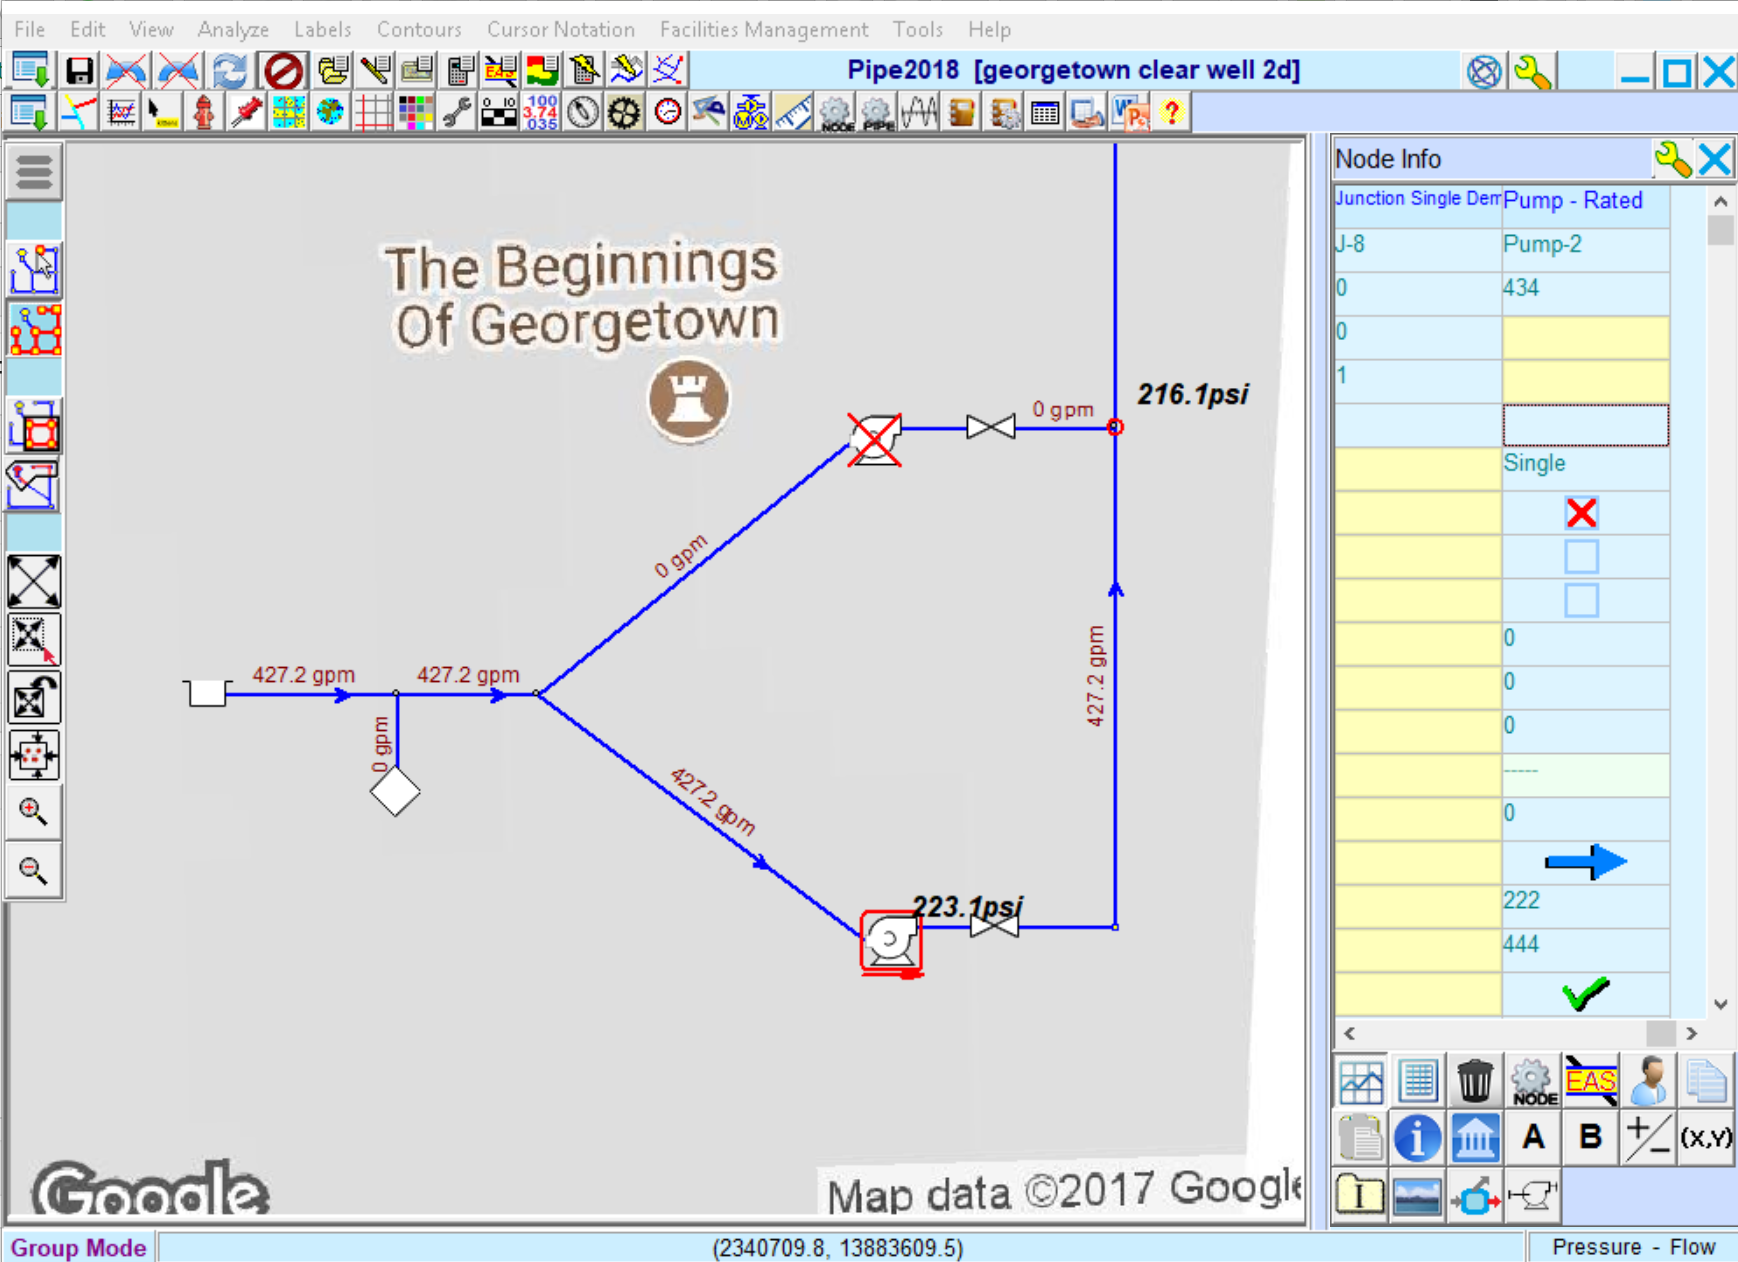 Piping And Instrumentation Diagrams Pids Kypipe Diagram 2 D On A Google Roadmap